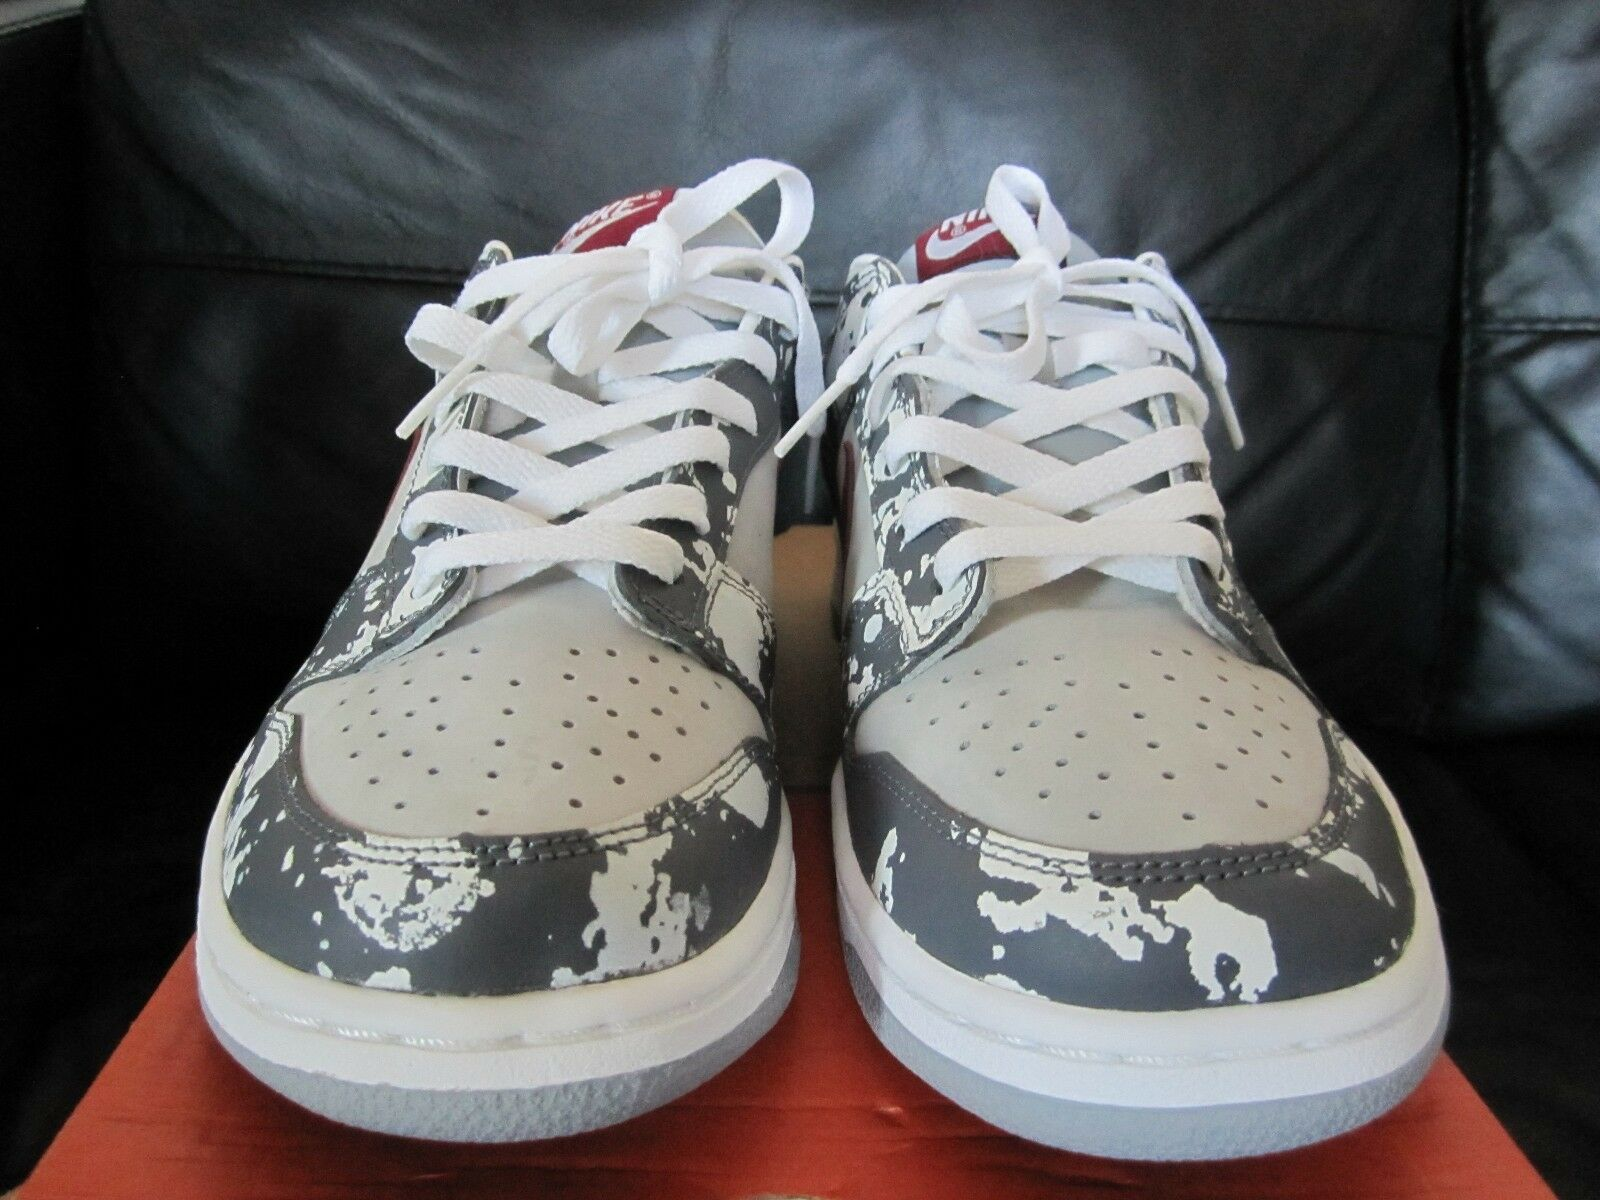 Nike Dunk Low 2002 D.S Premium Splatter Limited Edition